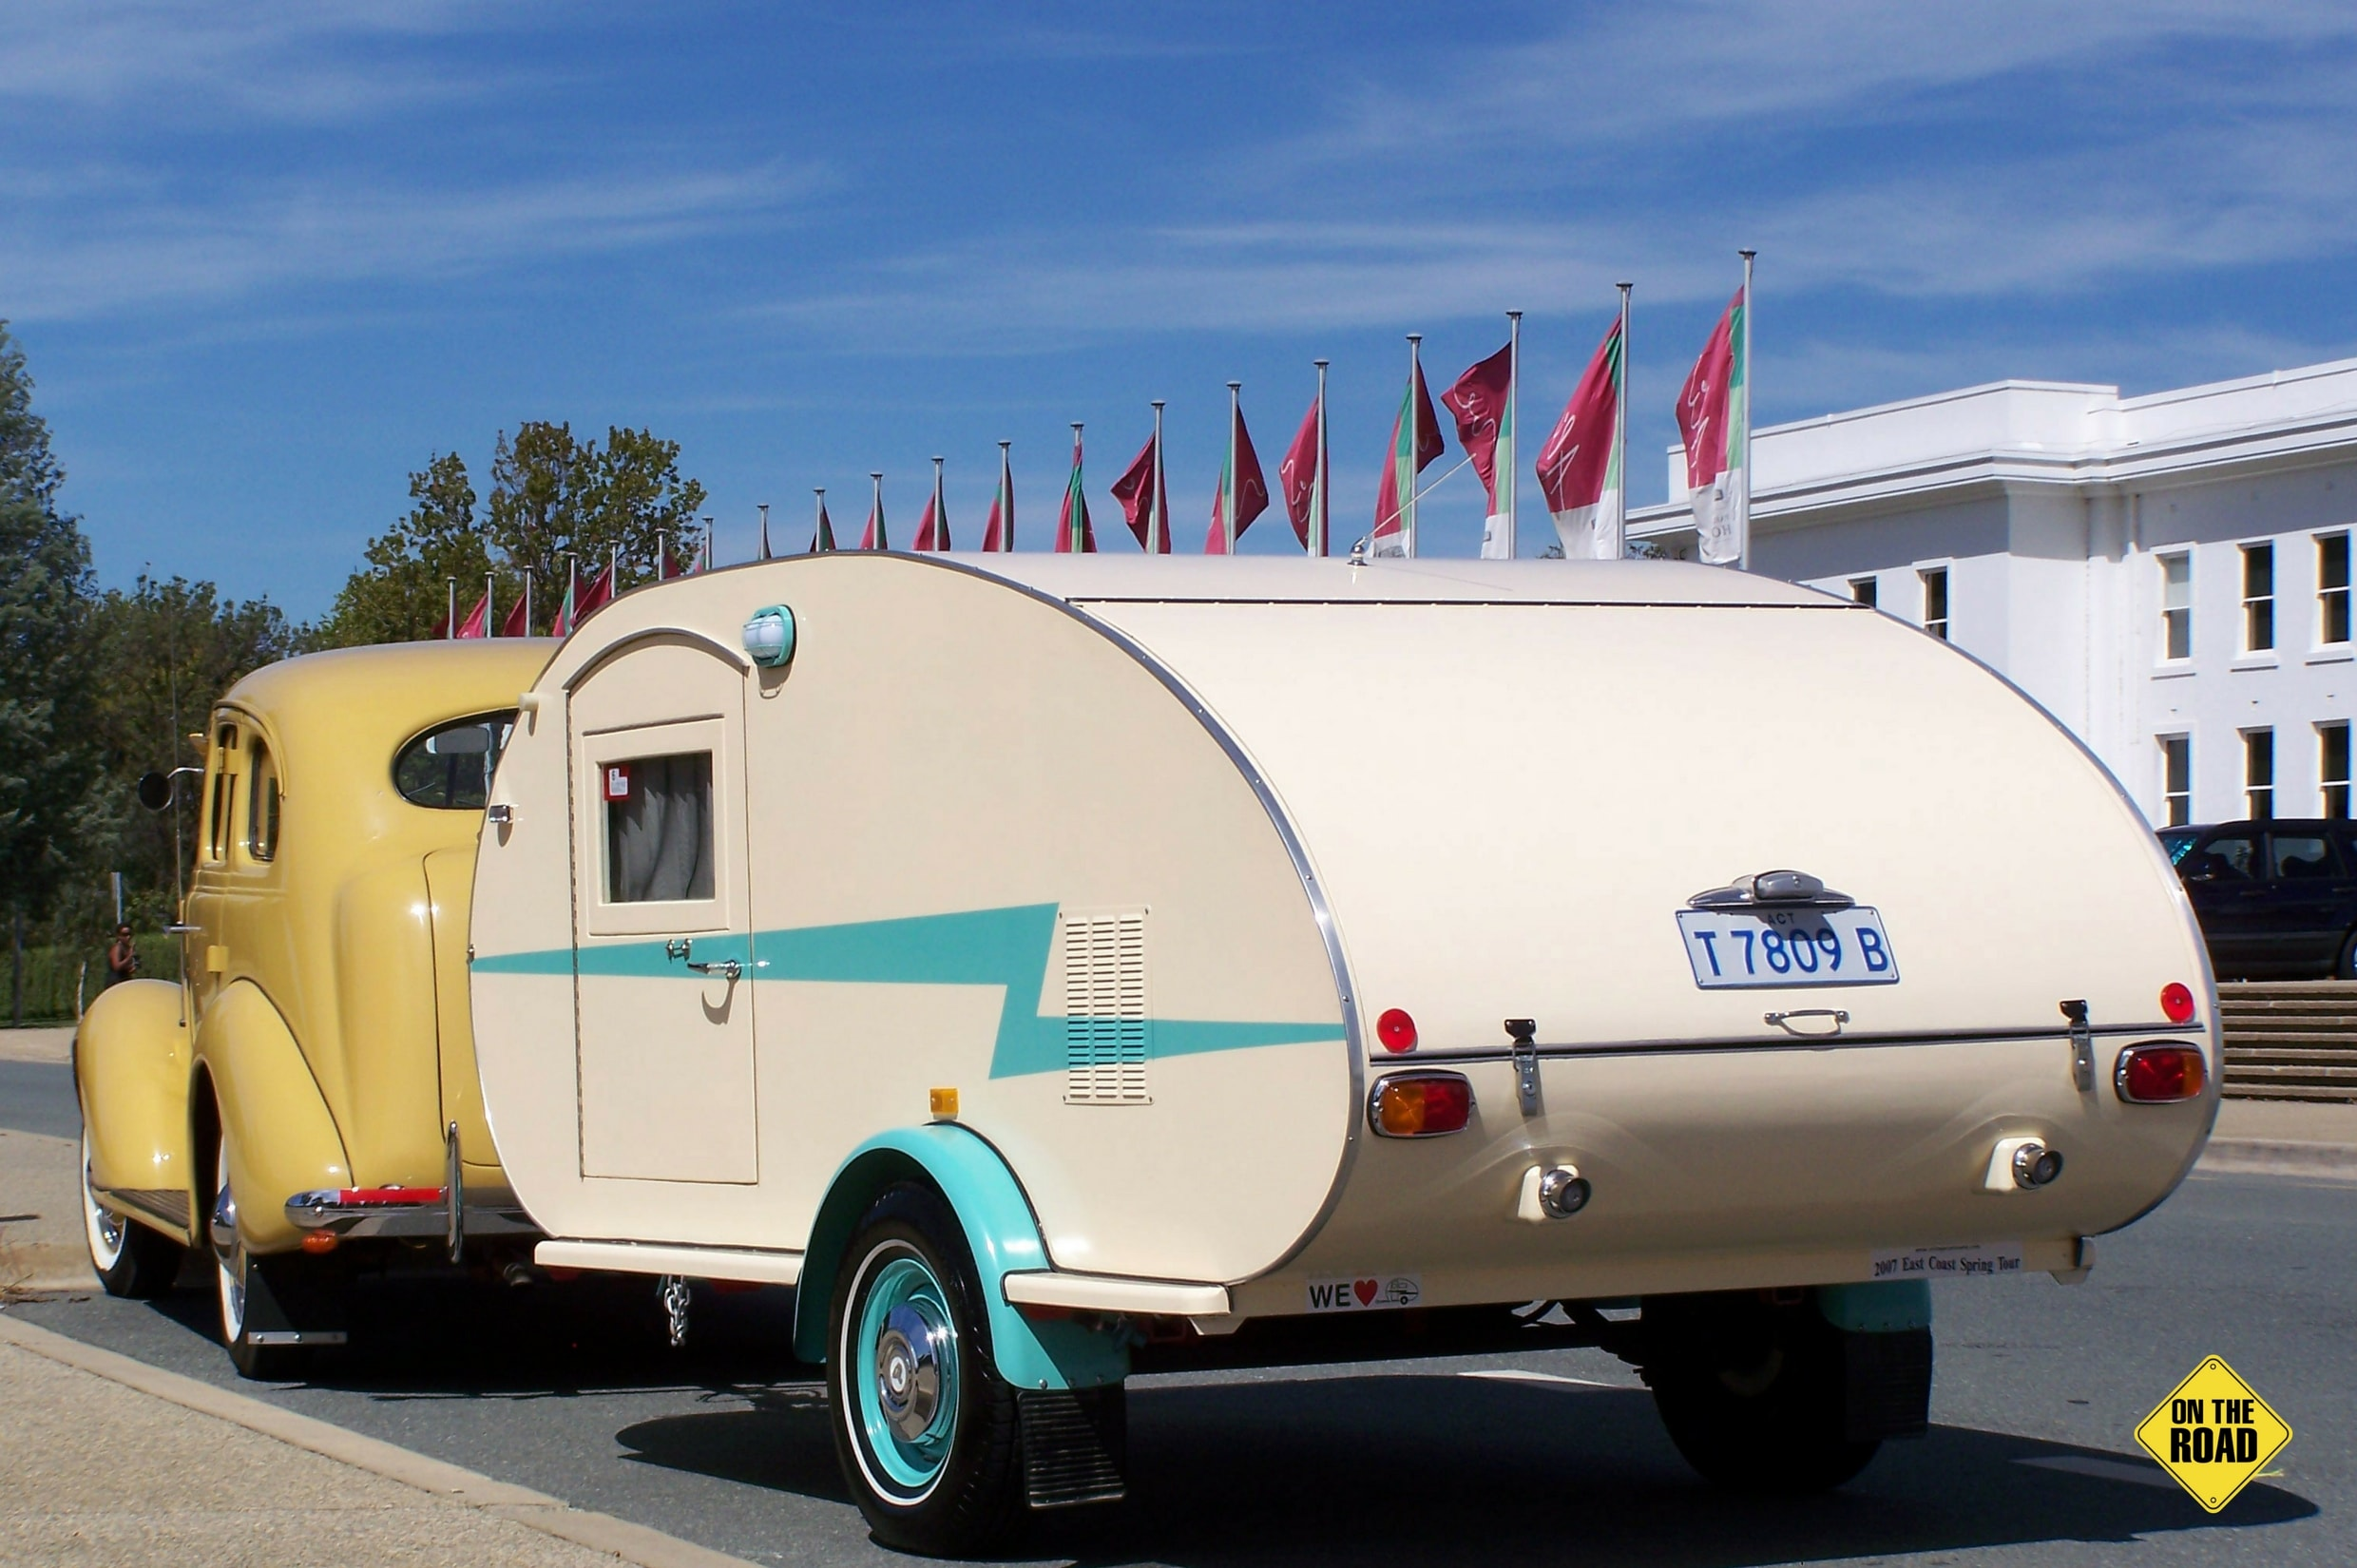 Retro Teardrop Van rear view